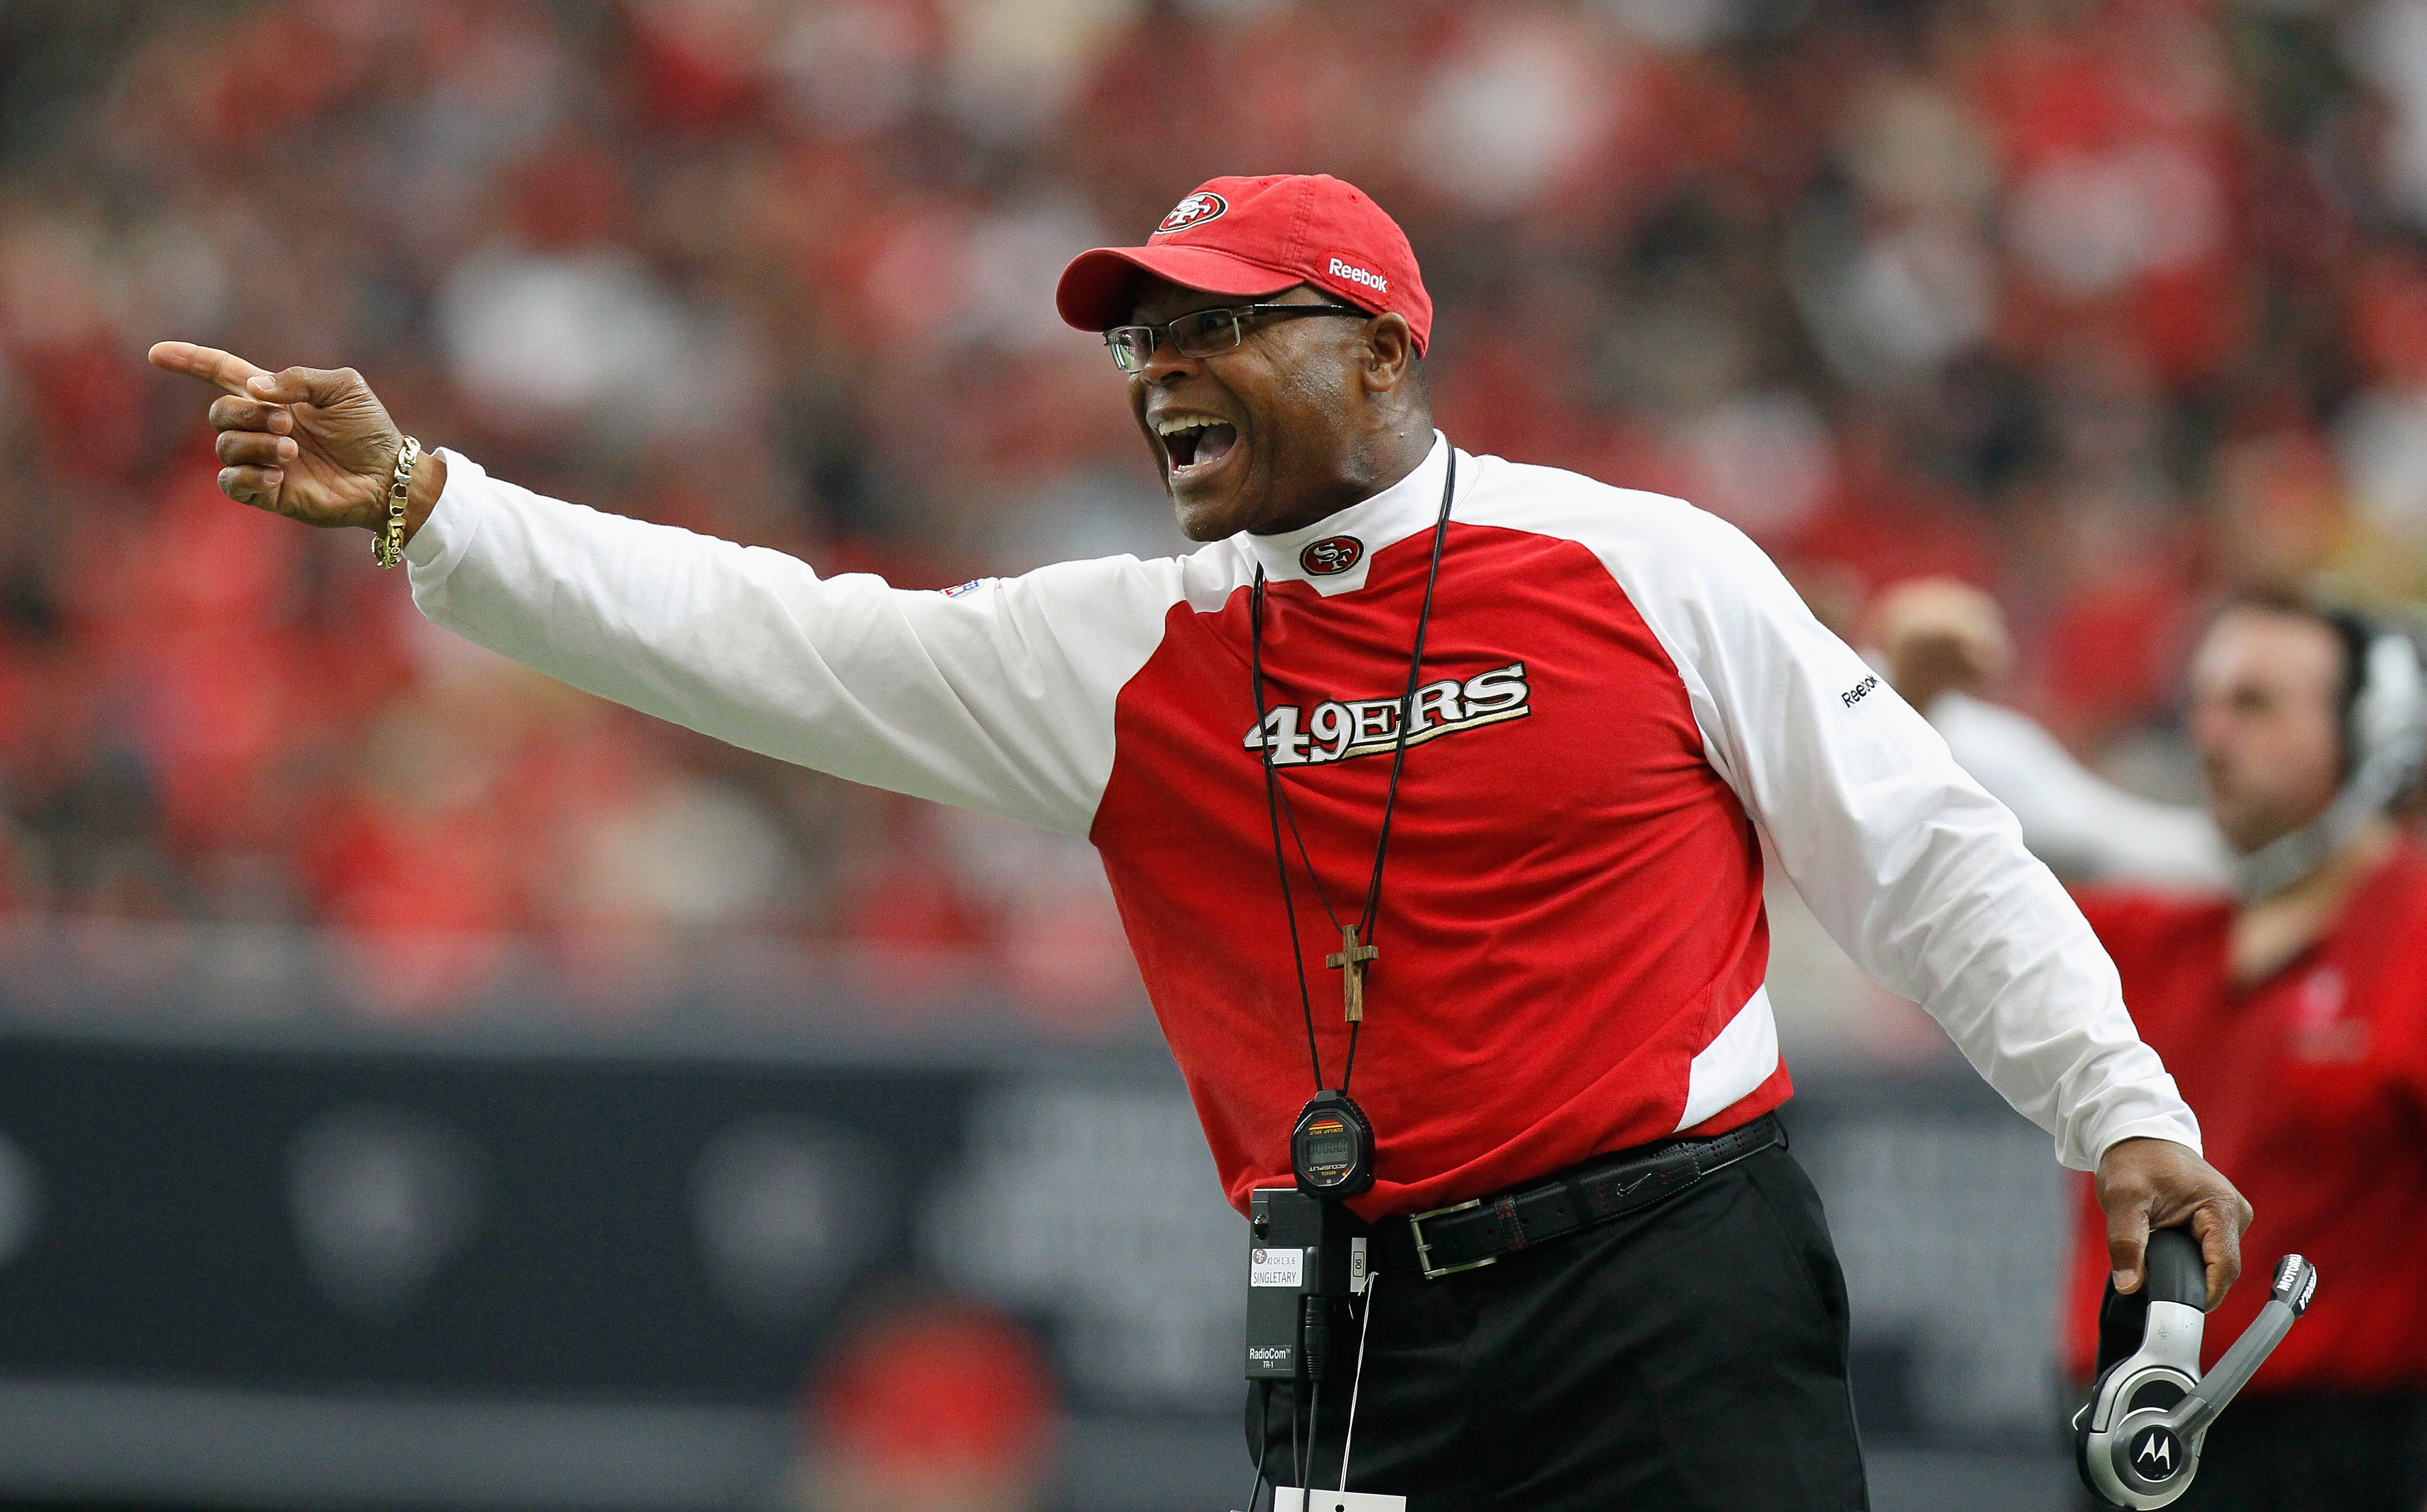 ATLANTA - OCTOBER 03:  Head coach Mike Singletary of the San Francisco 49ers questions a call during the game against the Atlanta Falcons at Georgia Dome on October 3, 2010 in Atlanta, Georgia.  (Photo by Kevin C. Cox/Getty Images)